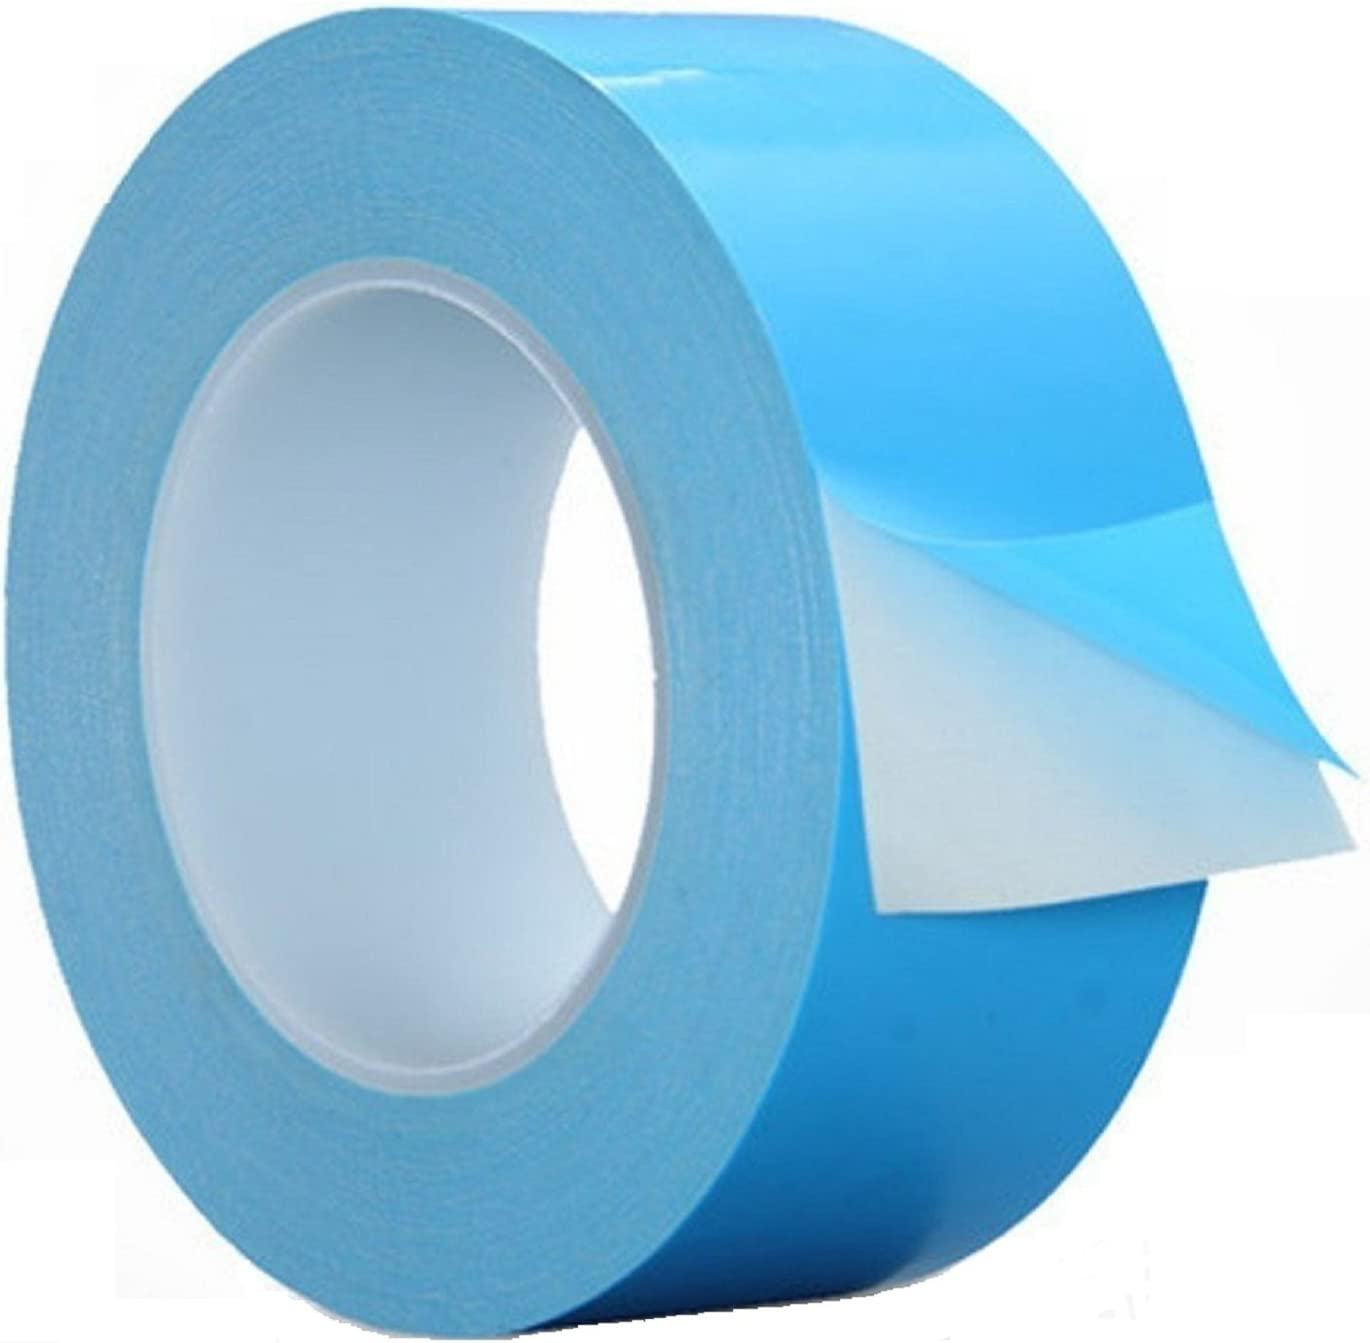 Thermal Double Sided Adhesive Tape 40mm by 25M, HPFIX High Performance Thermally Conductive Tape Apply for Coolers, Heat Sink, LED Strips, Computer CPU, GPU, Easy to Apply & High Durability